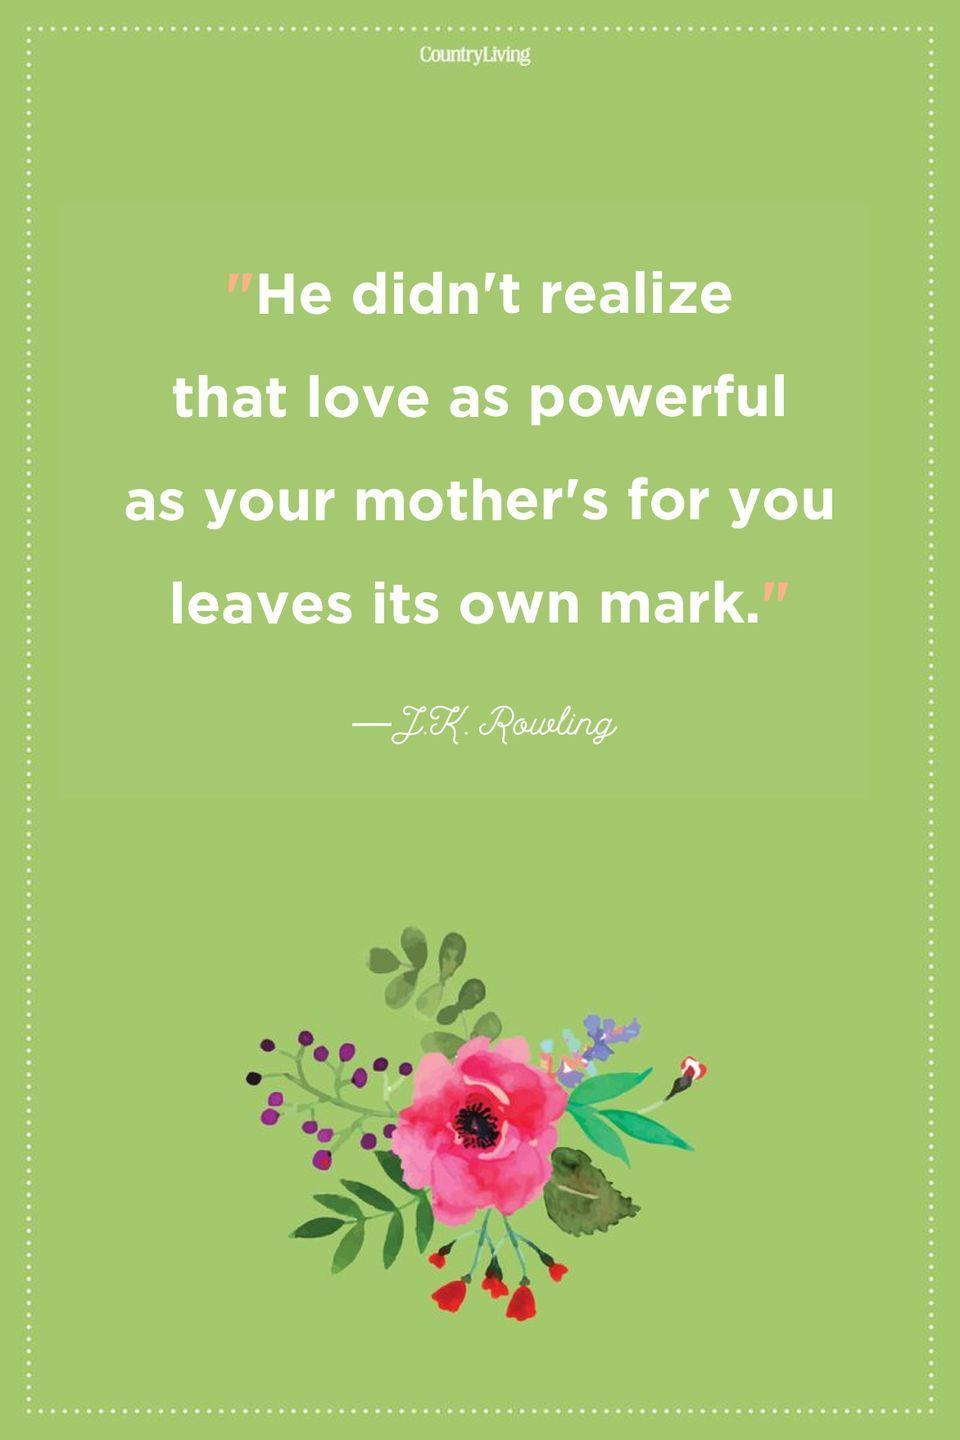 "<p>""He didn't realize that love as powerful as your mother's for you leaves its own mark.""</p>"